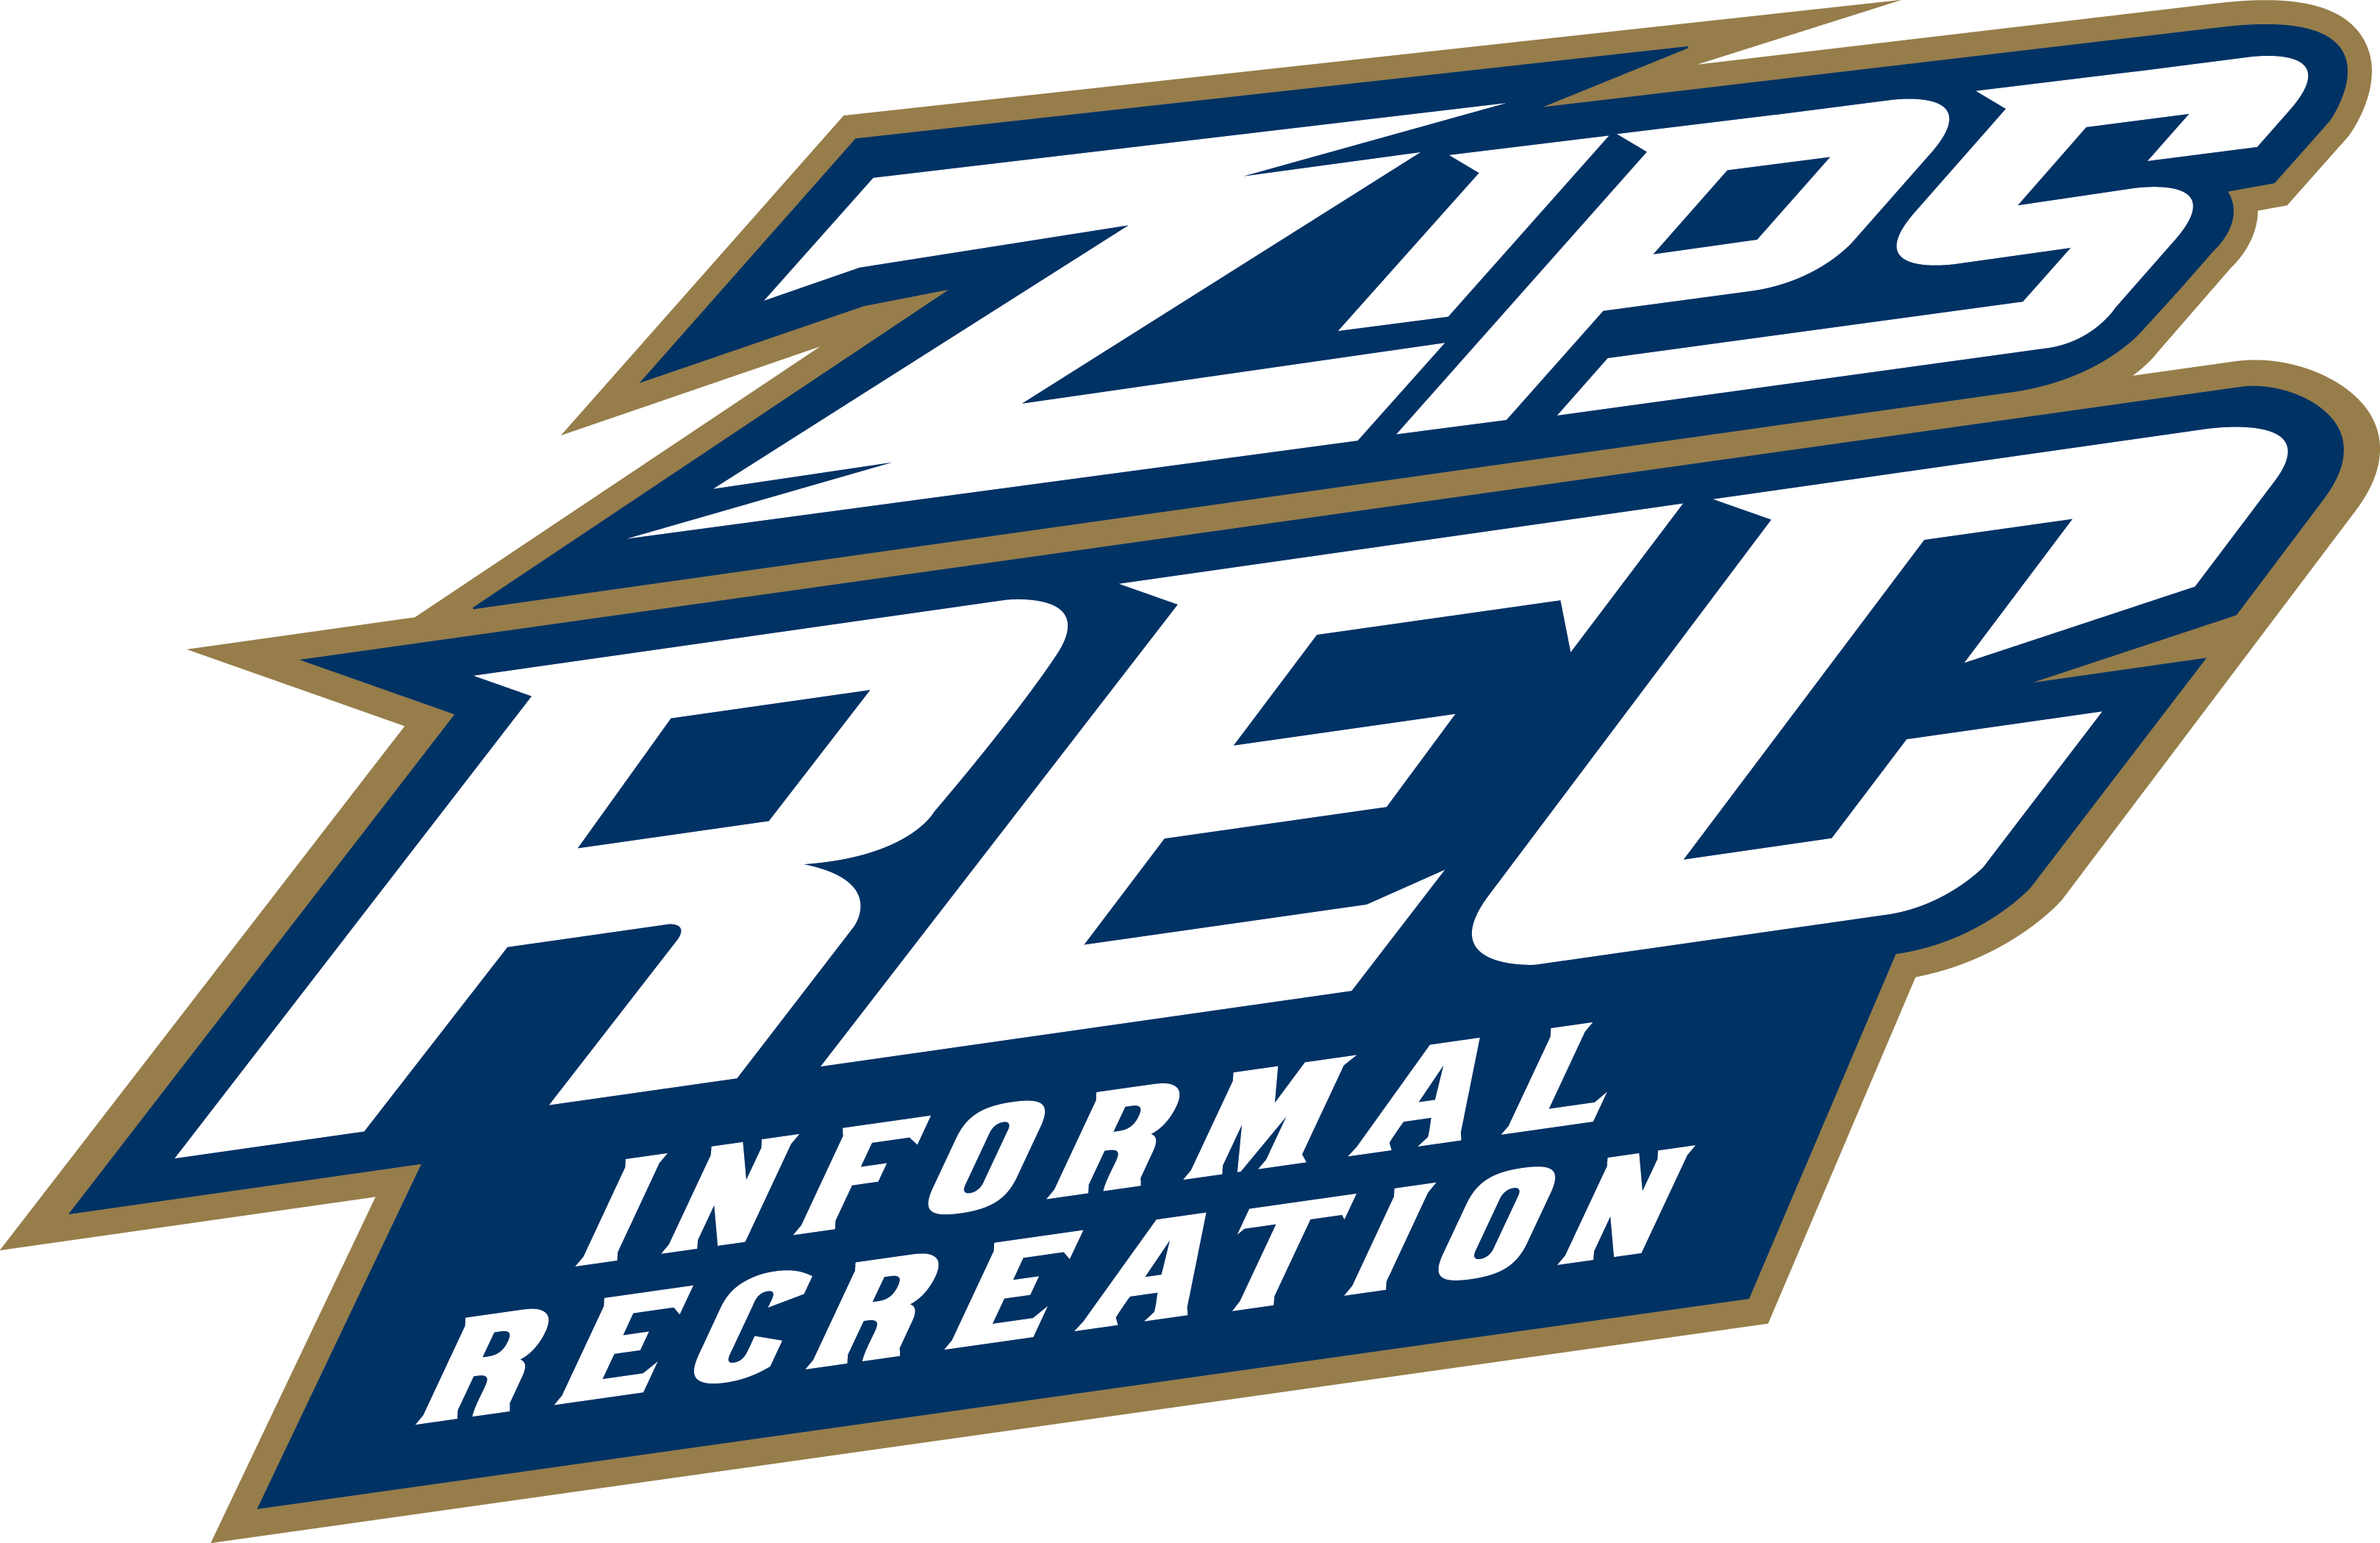 Zips Rec Informal Recreation